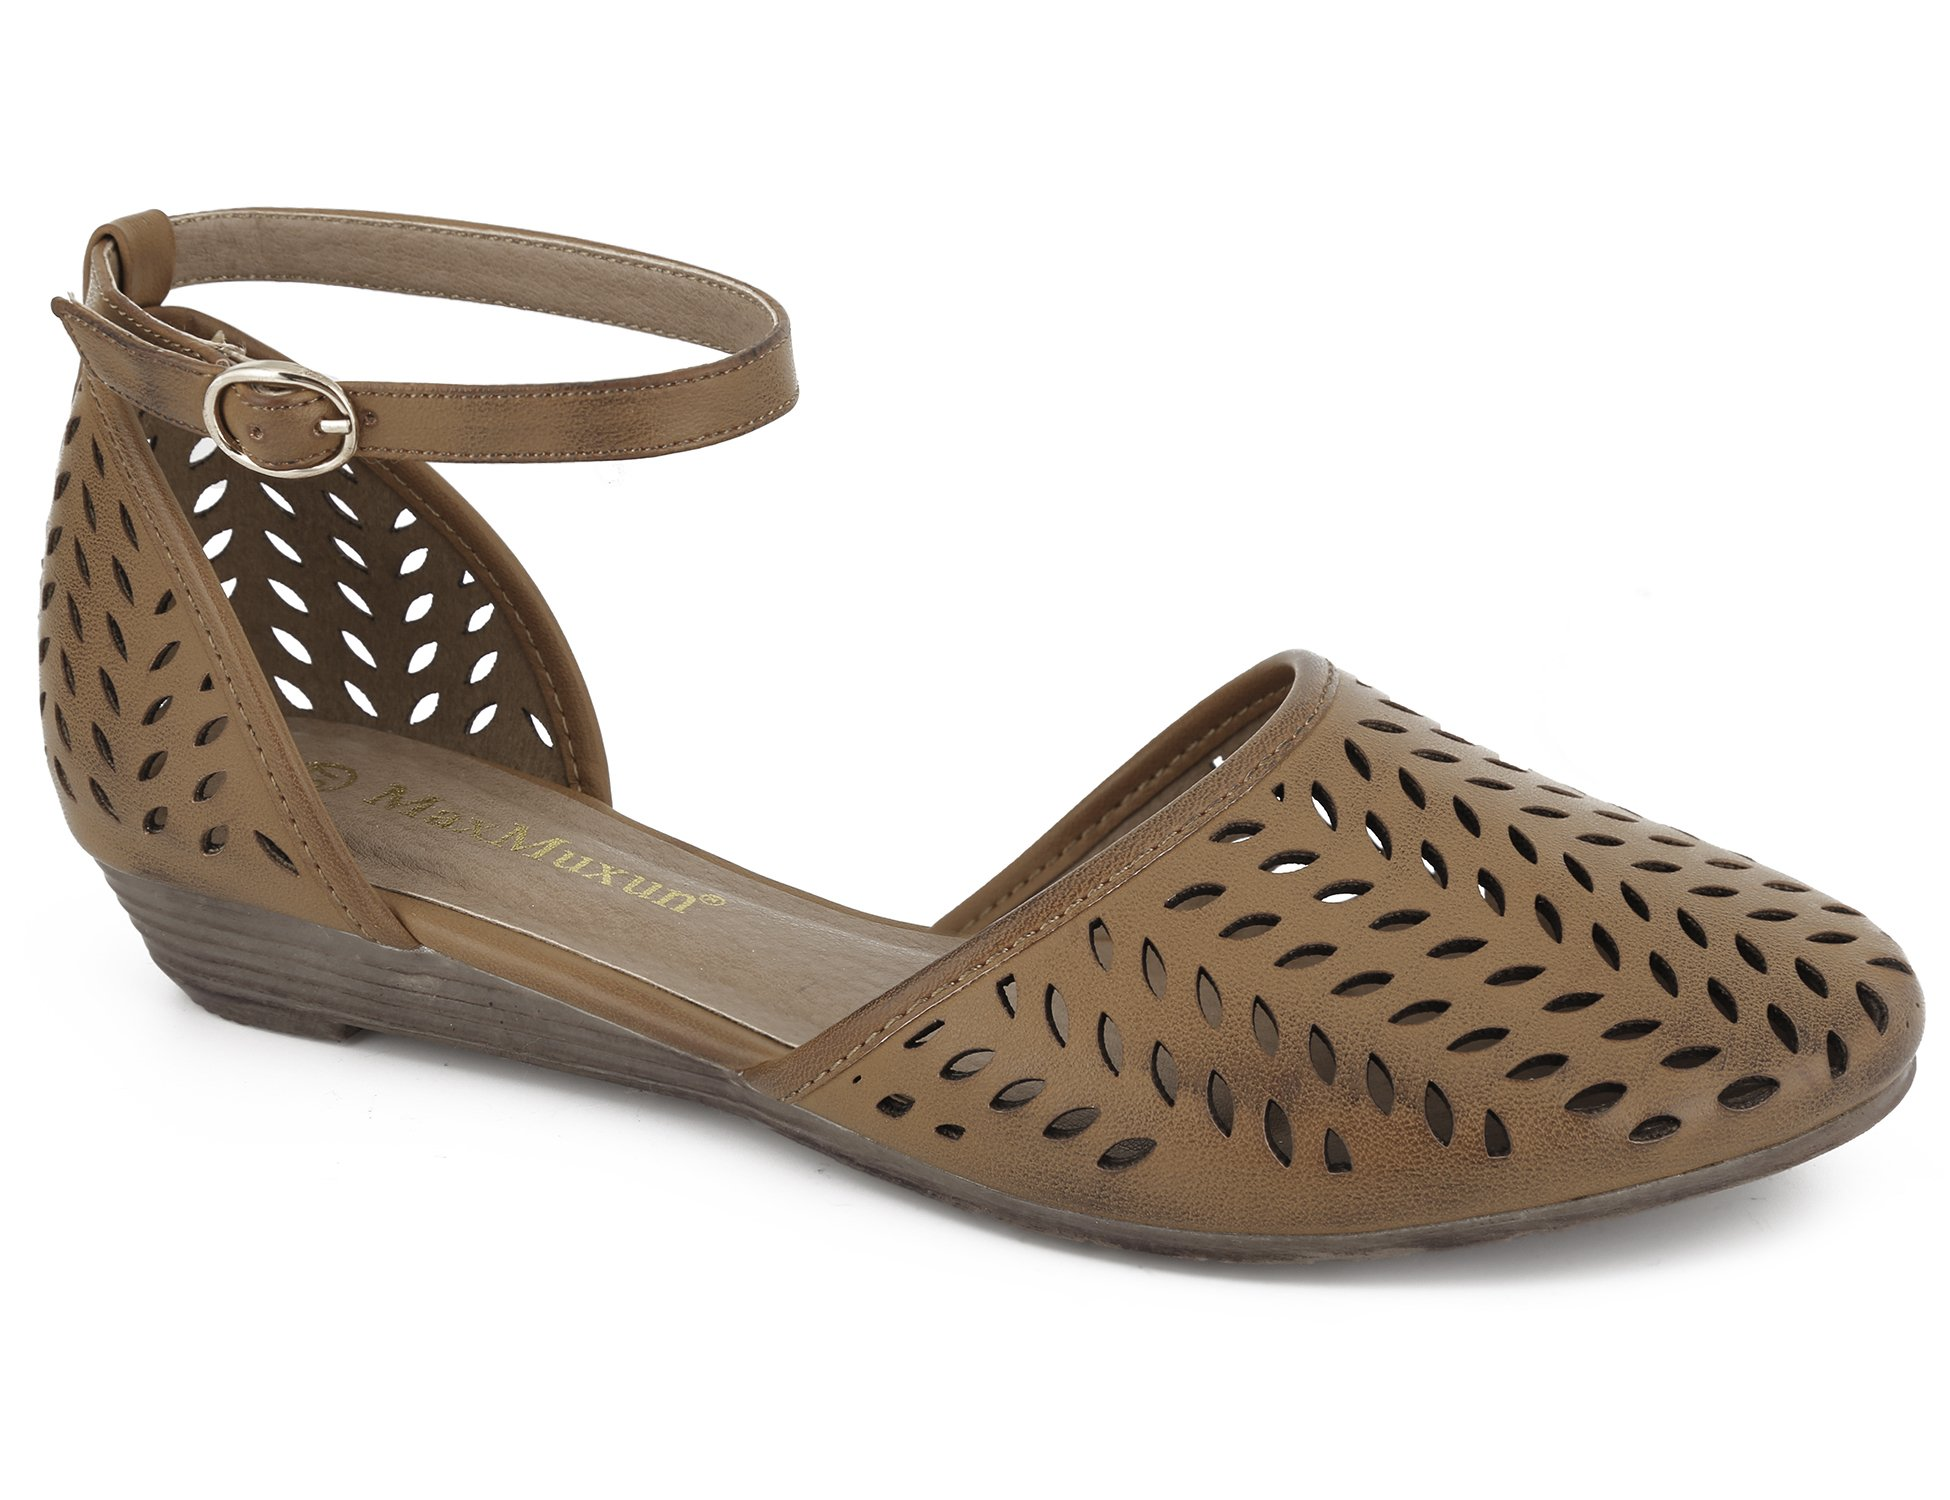 6fc7d7747f21 MaxMuxun Womens Roman Ankle Strap Cage Closed Toe Brown Flat Sandals Size 5